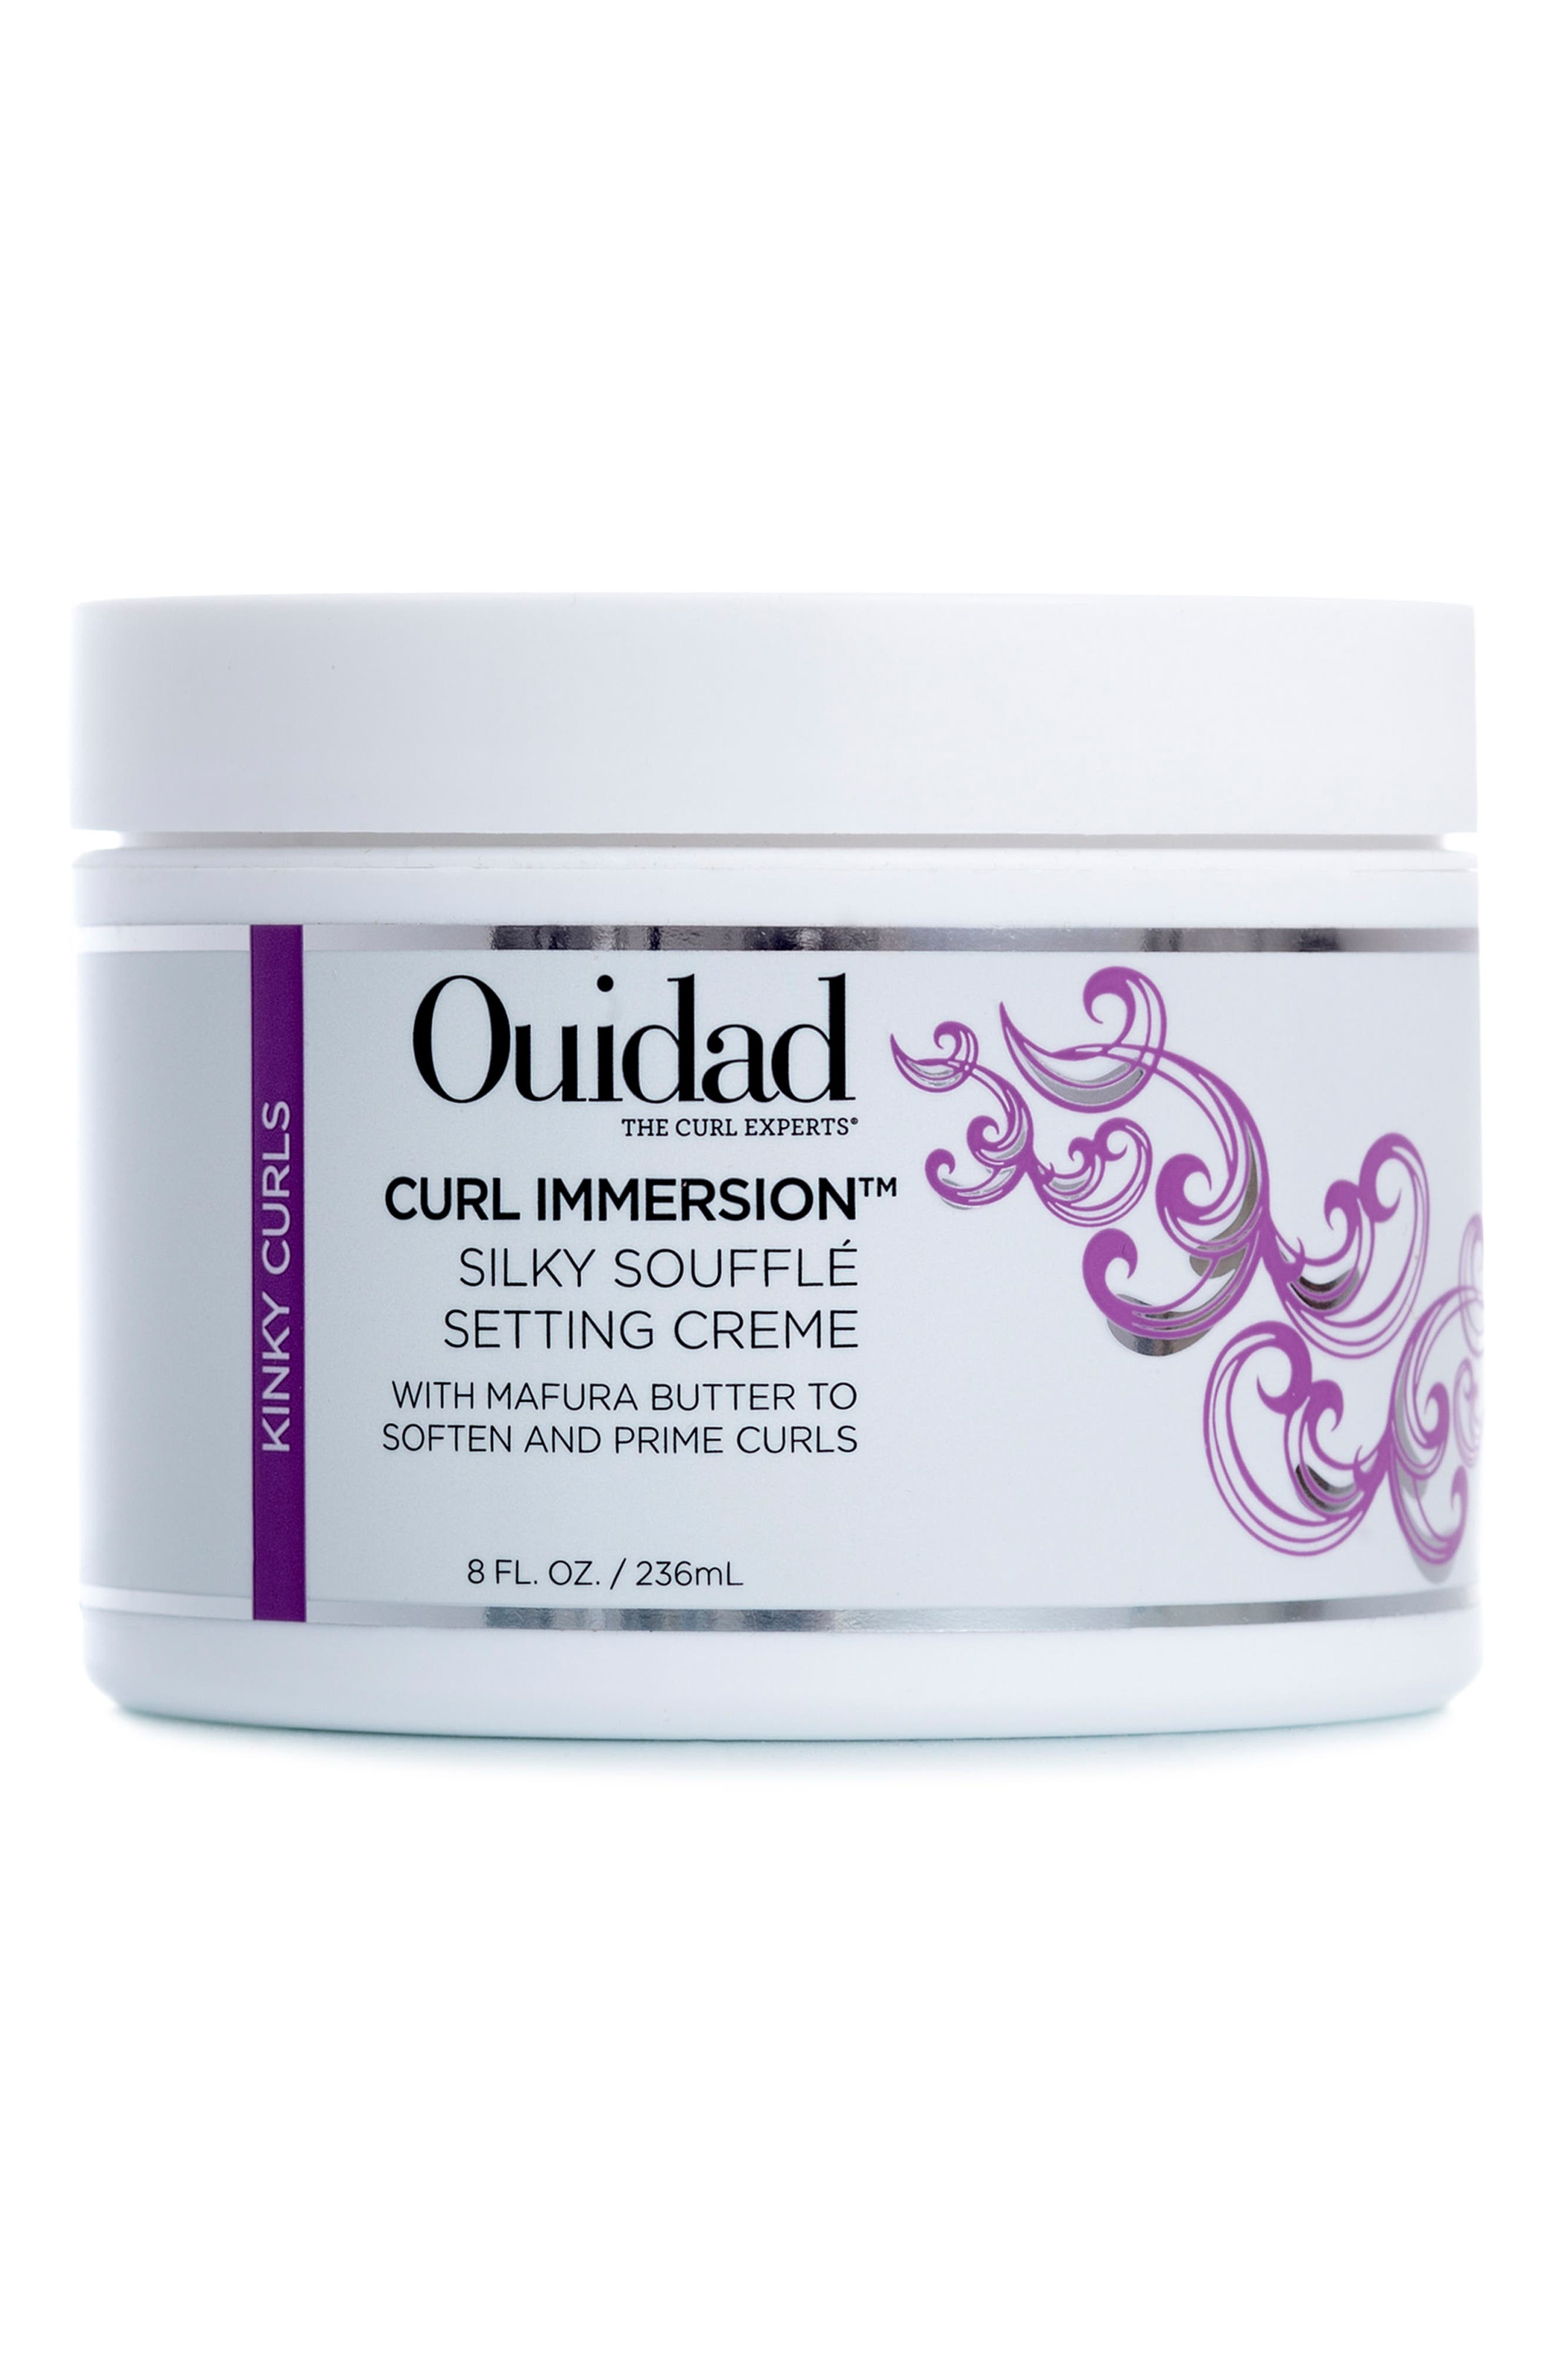 Curl Immersion<sup>™</sup> Silky Soufflé Setting Creme,                             Main thumbnail 1, color,                             000